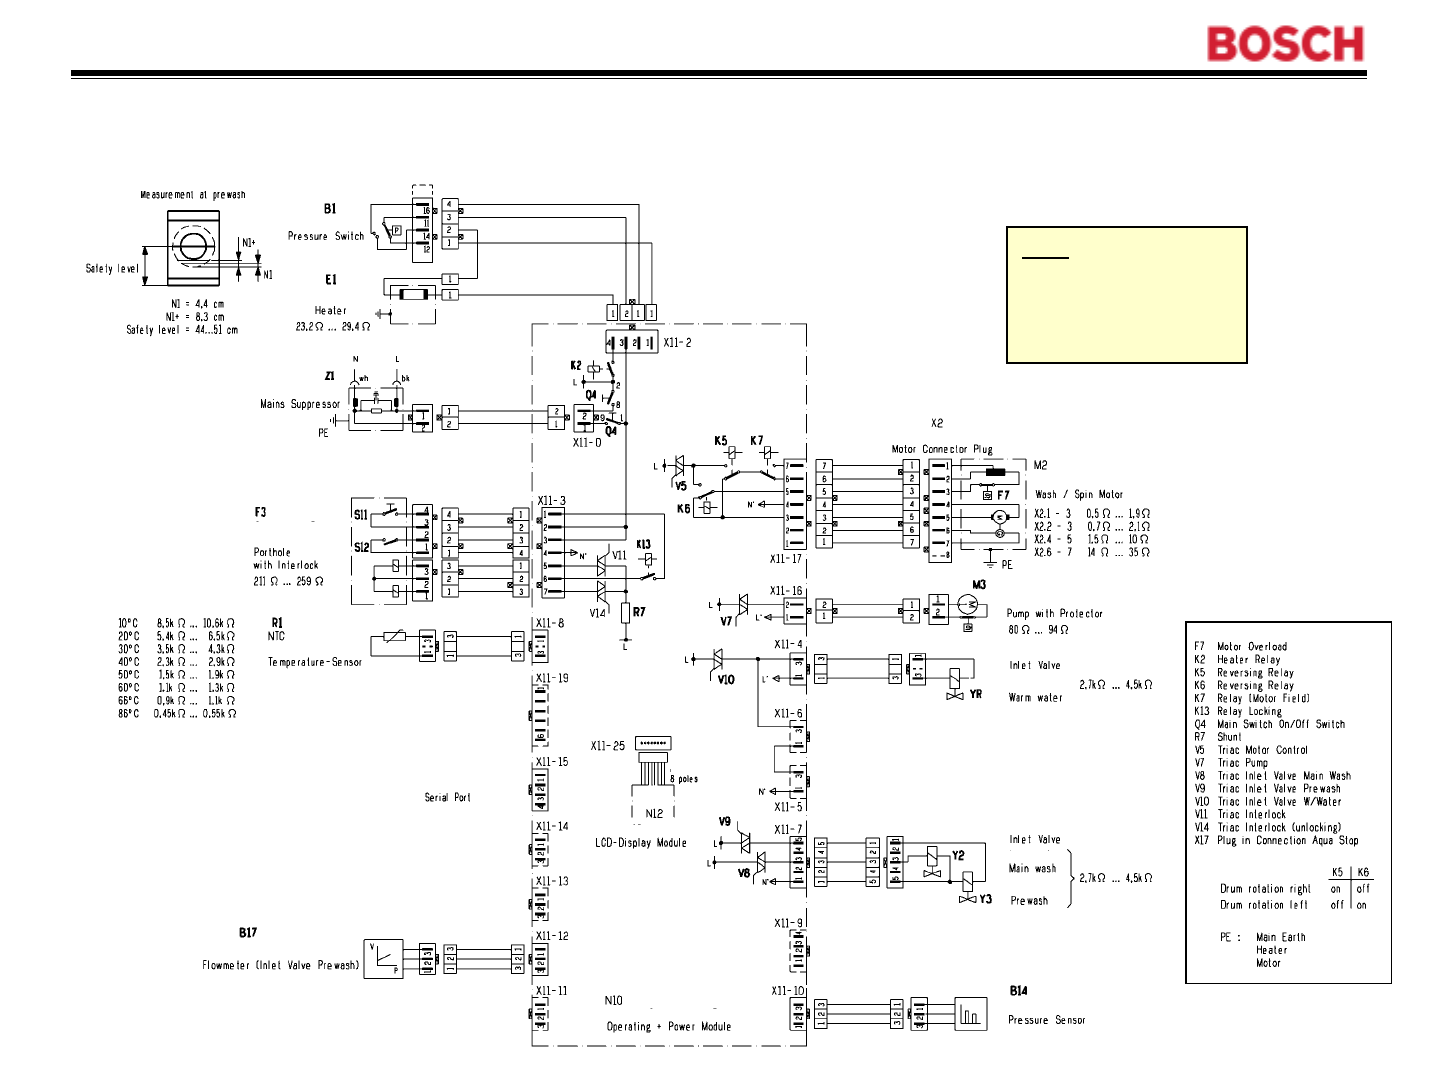 Wiring Diagram For Bosch Dishwasher from static-cdn.imageservice.cloud